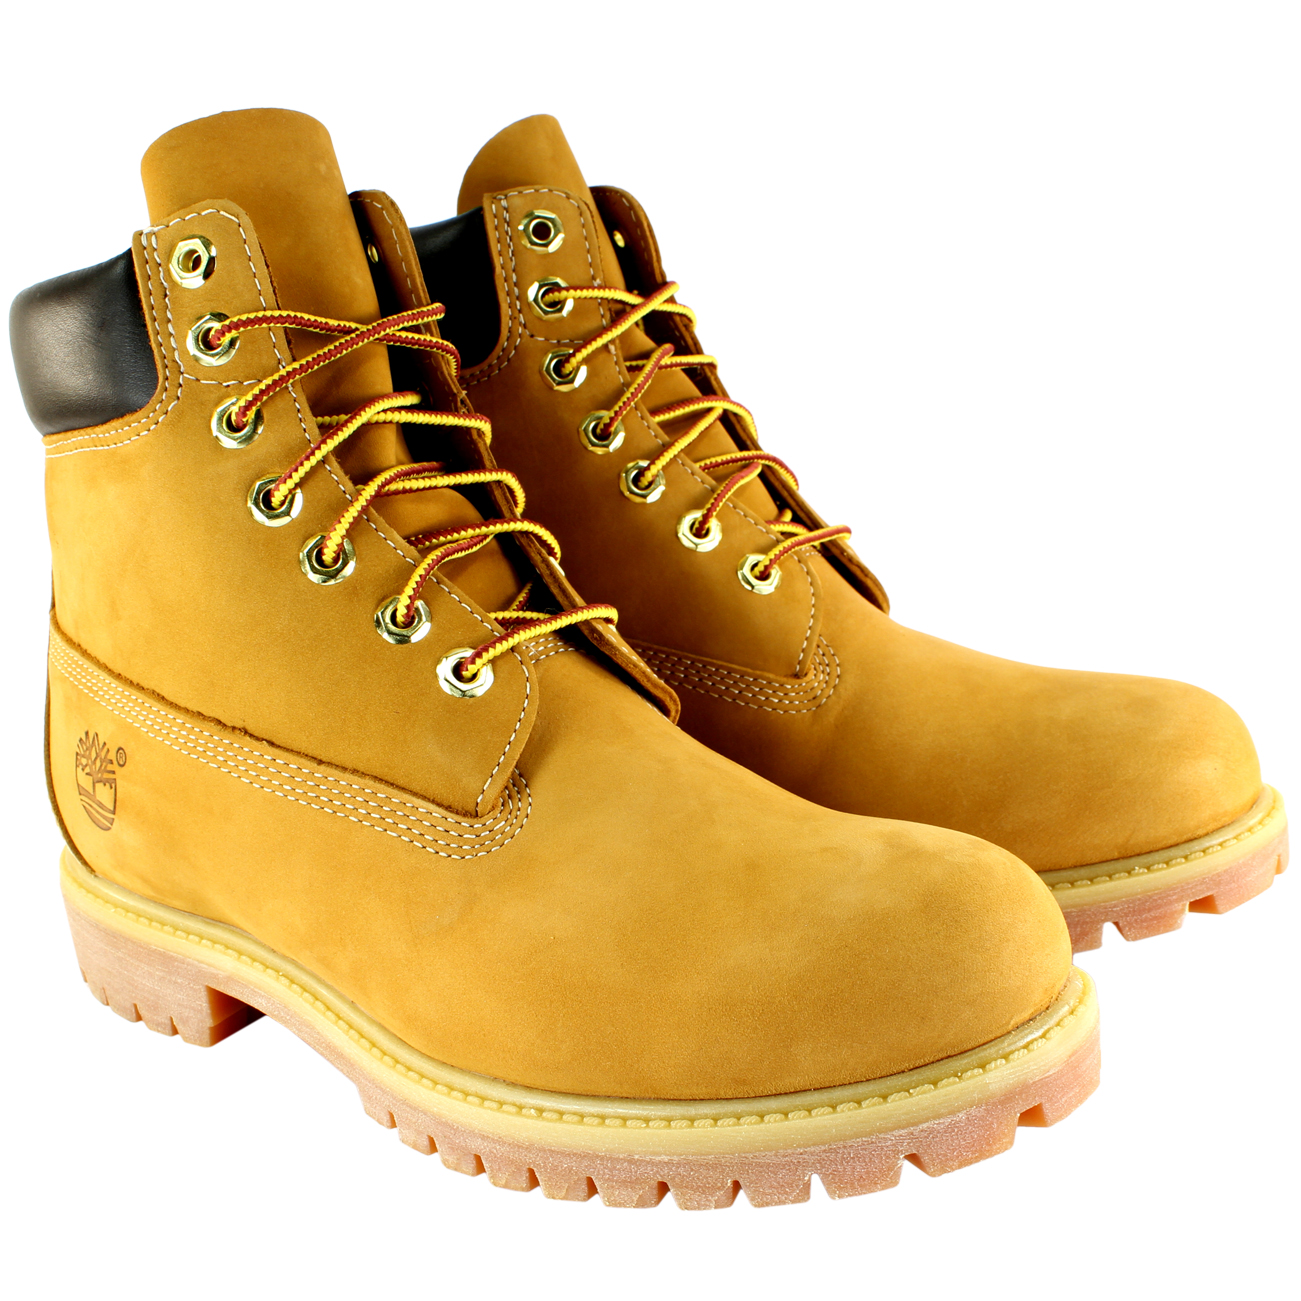 "Timberland 6"" Premium Classic Ankle Boots"